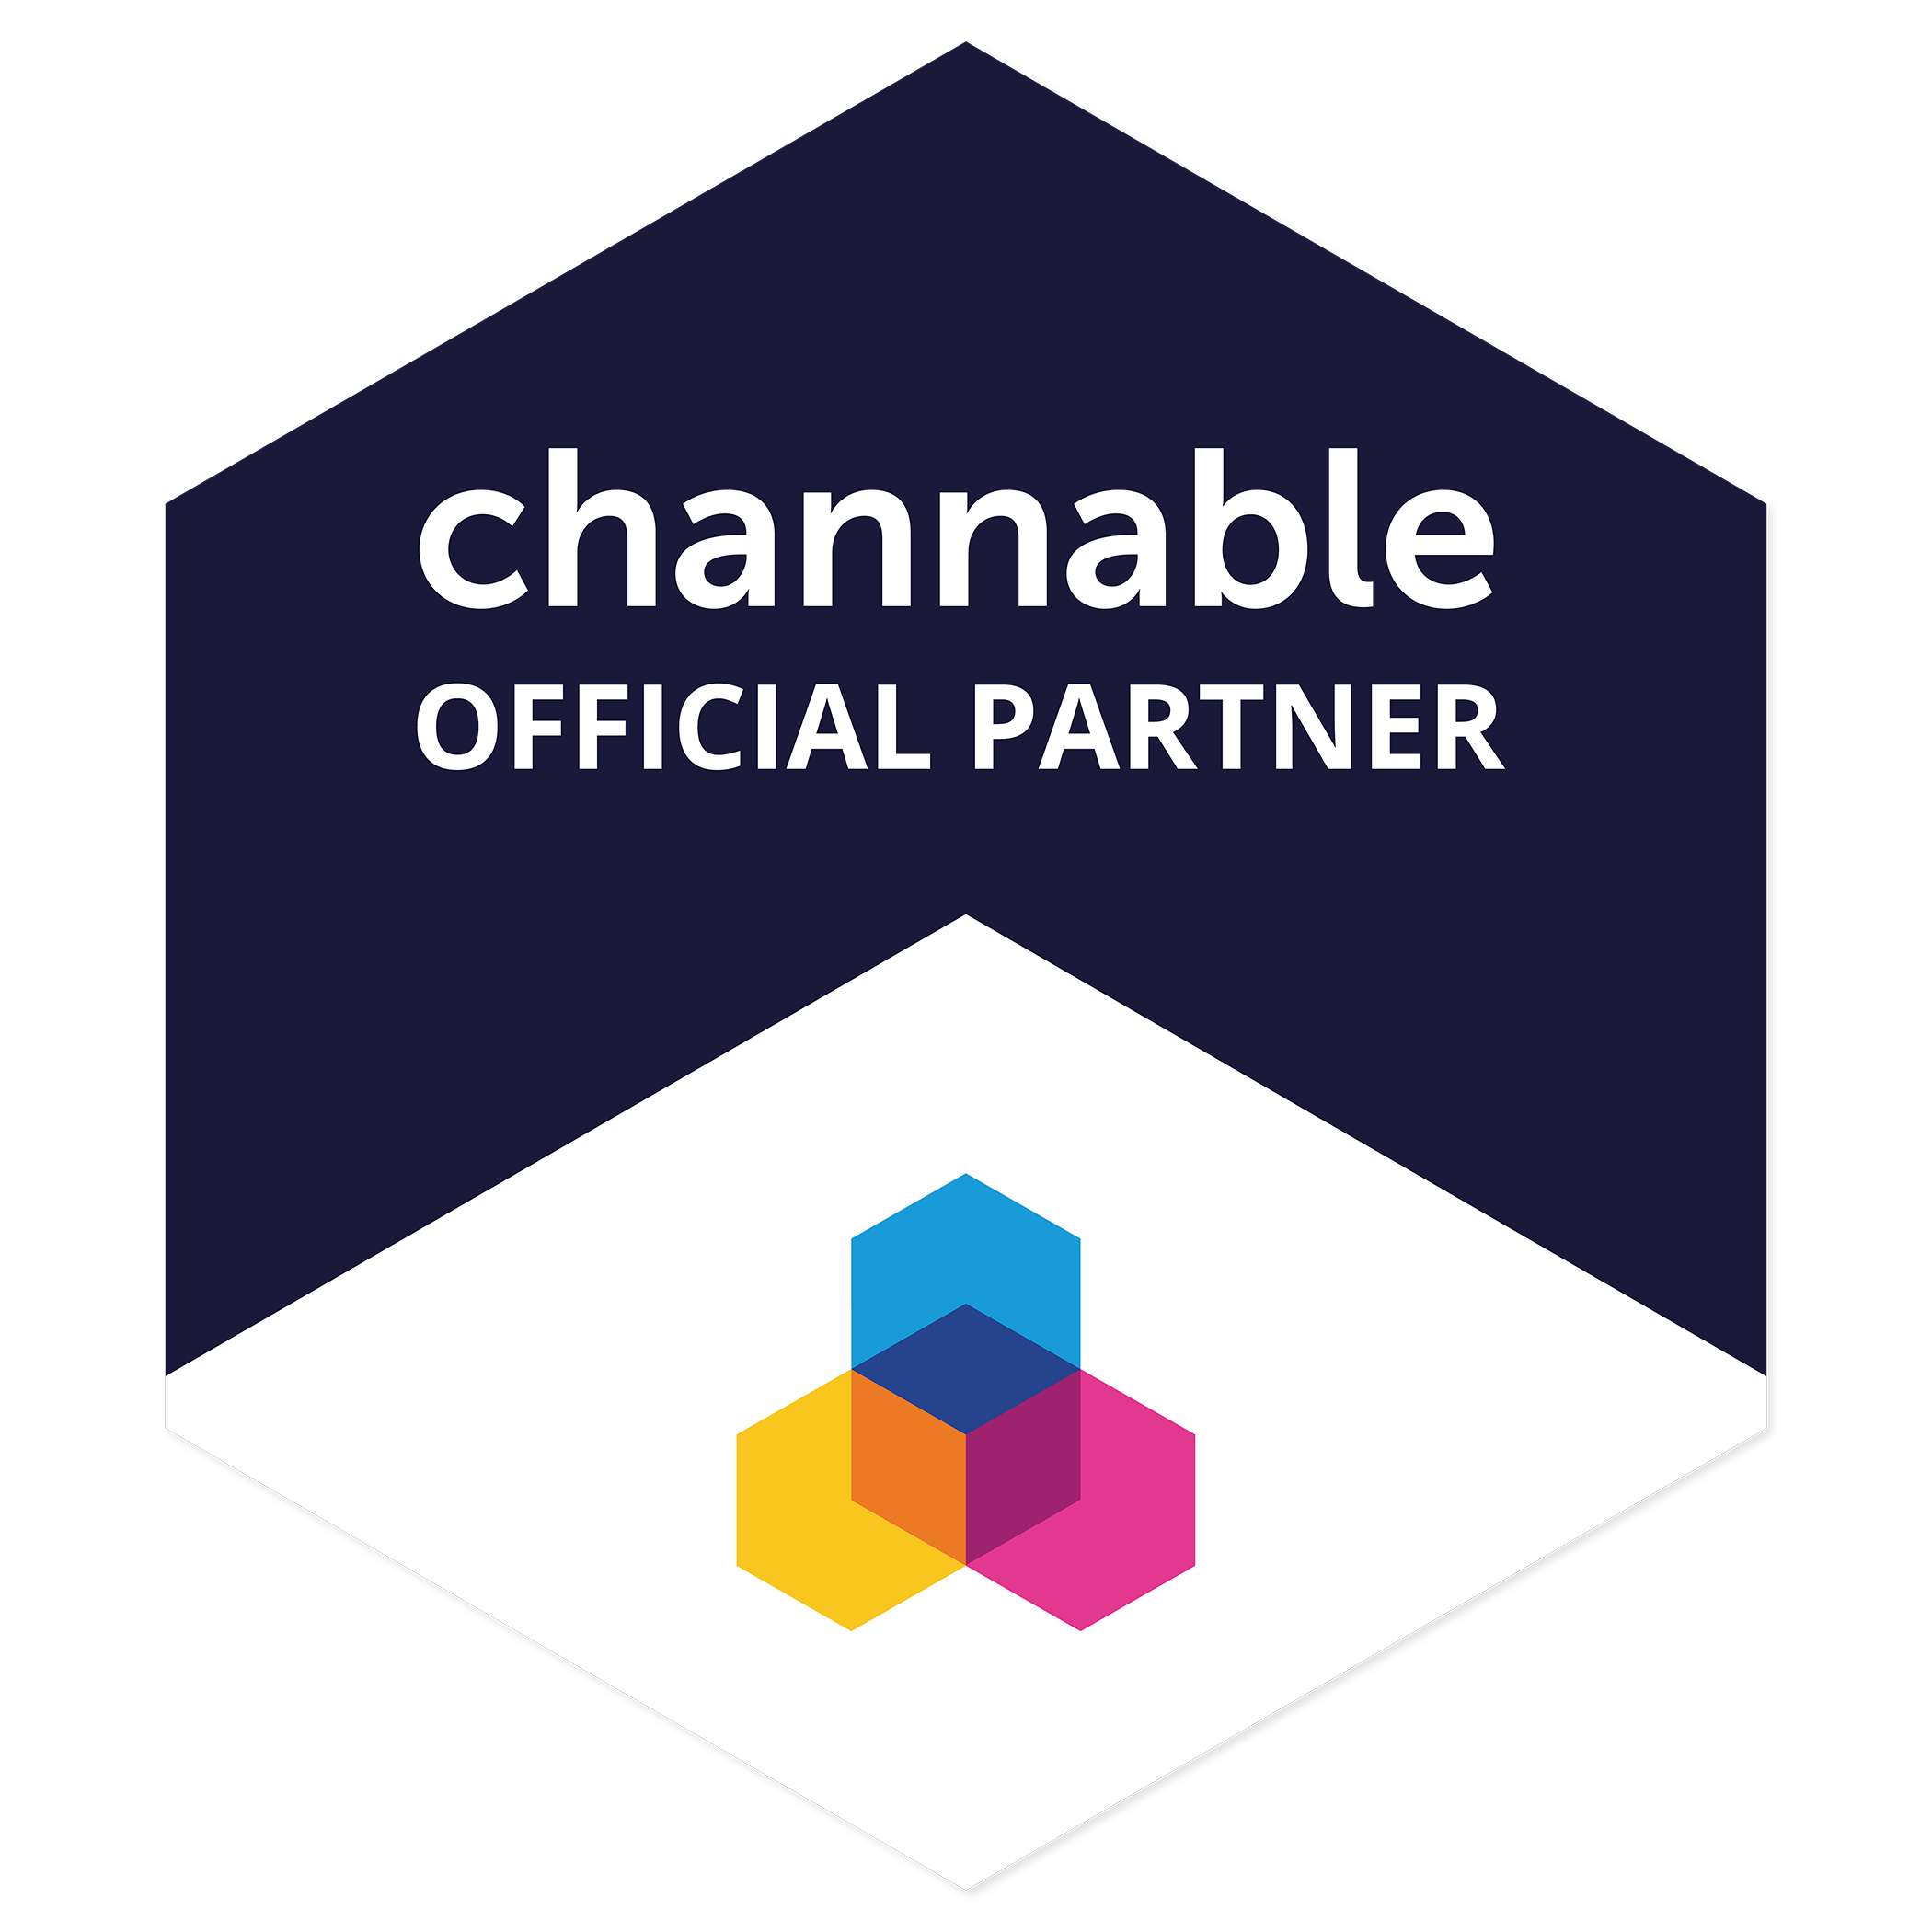 Channable official partner